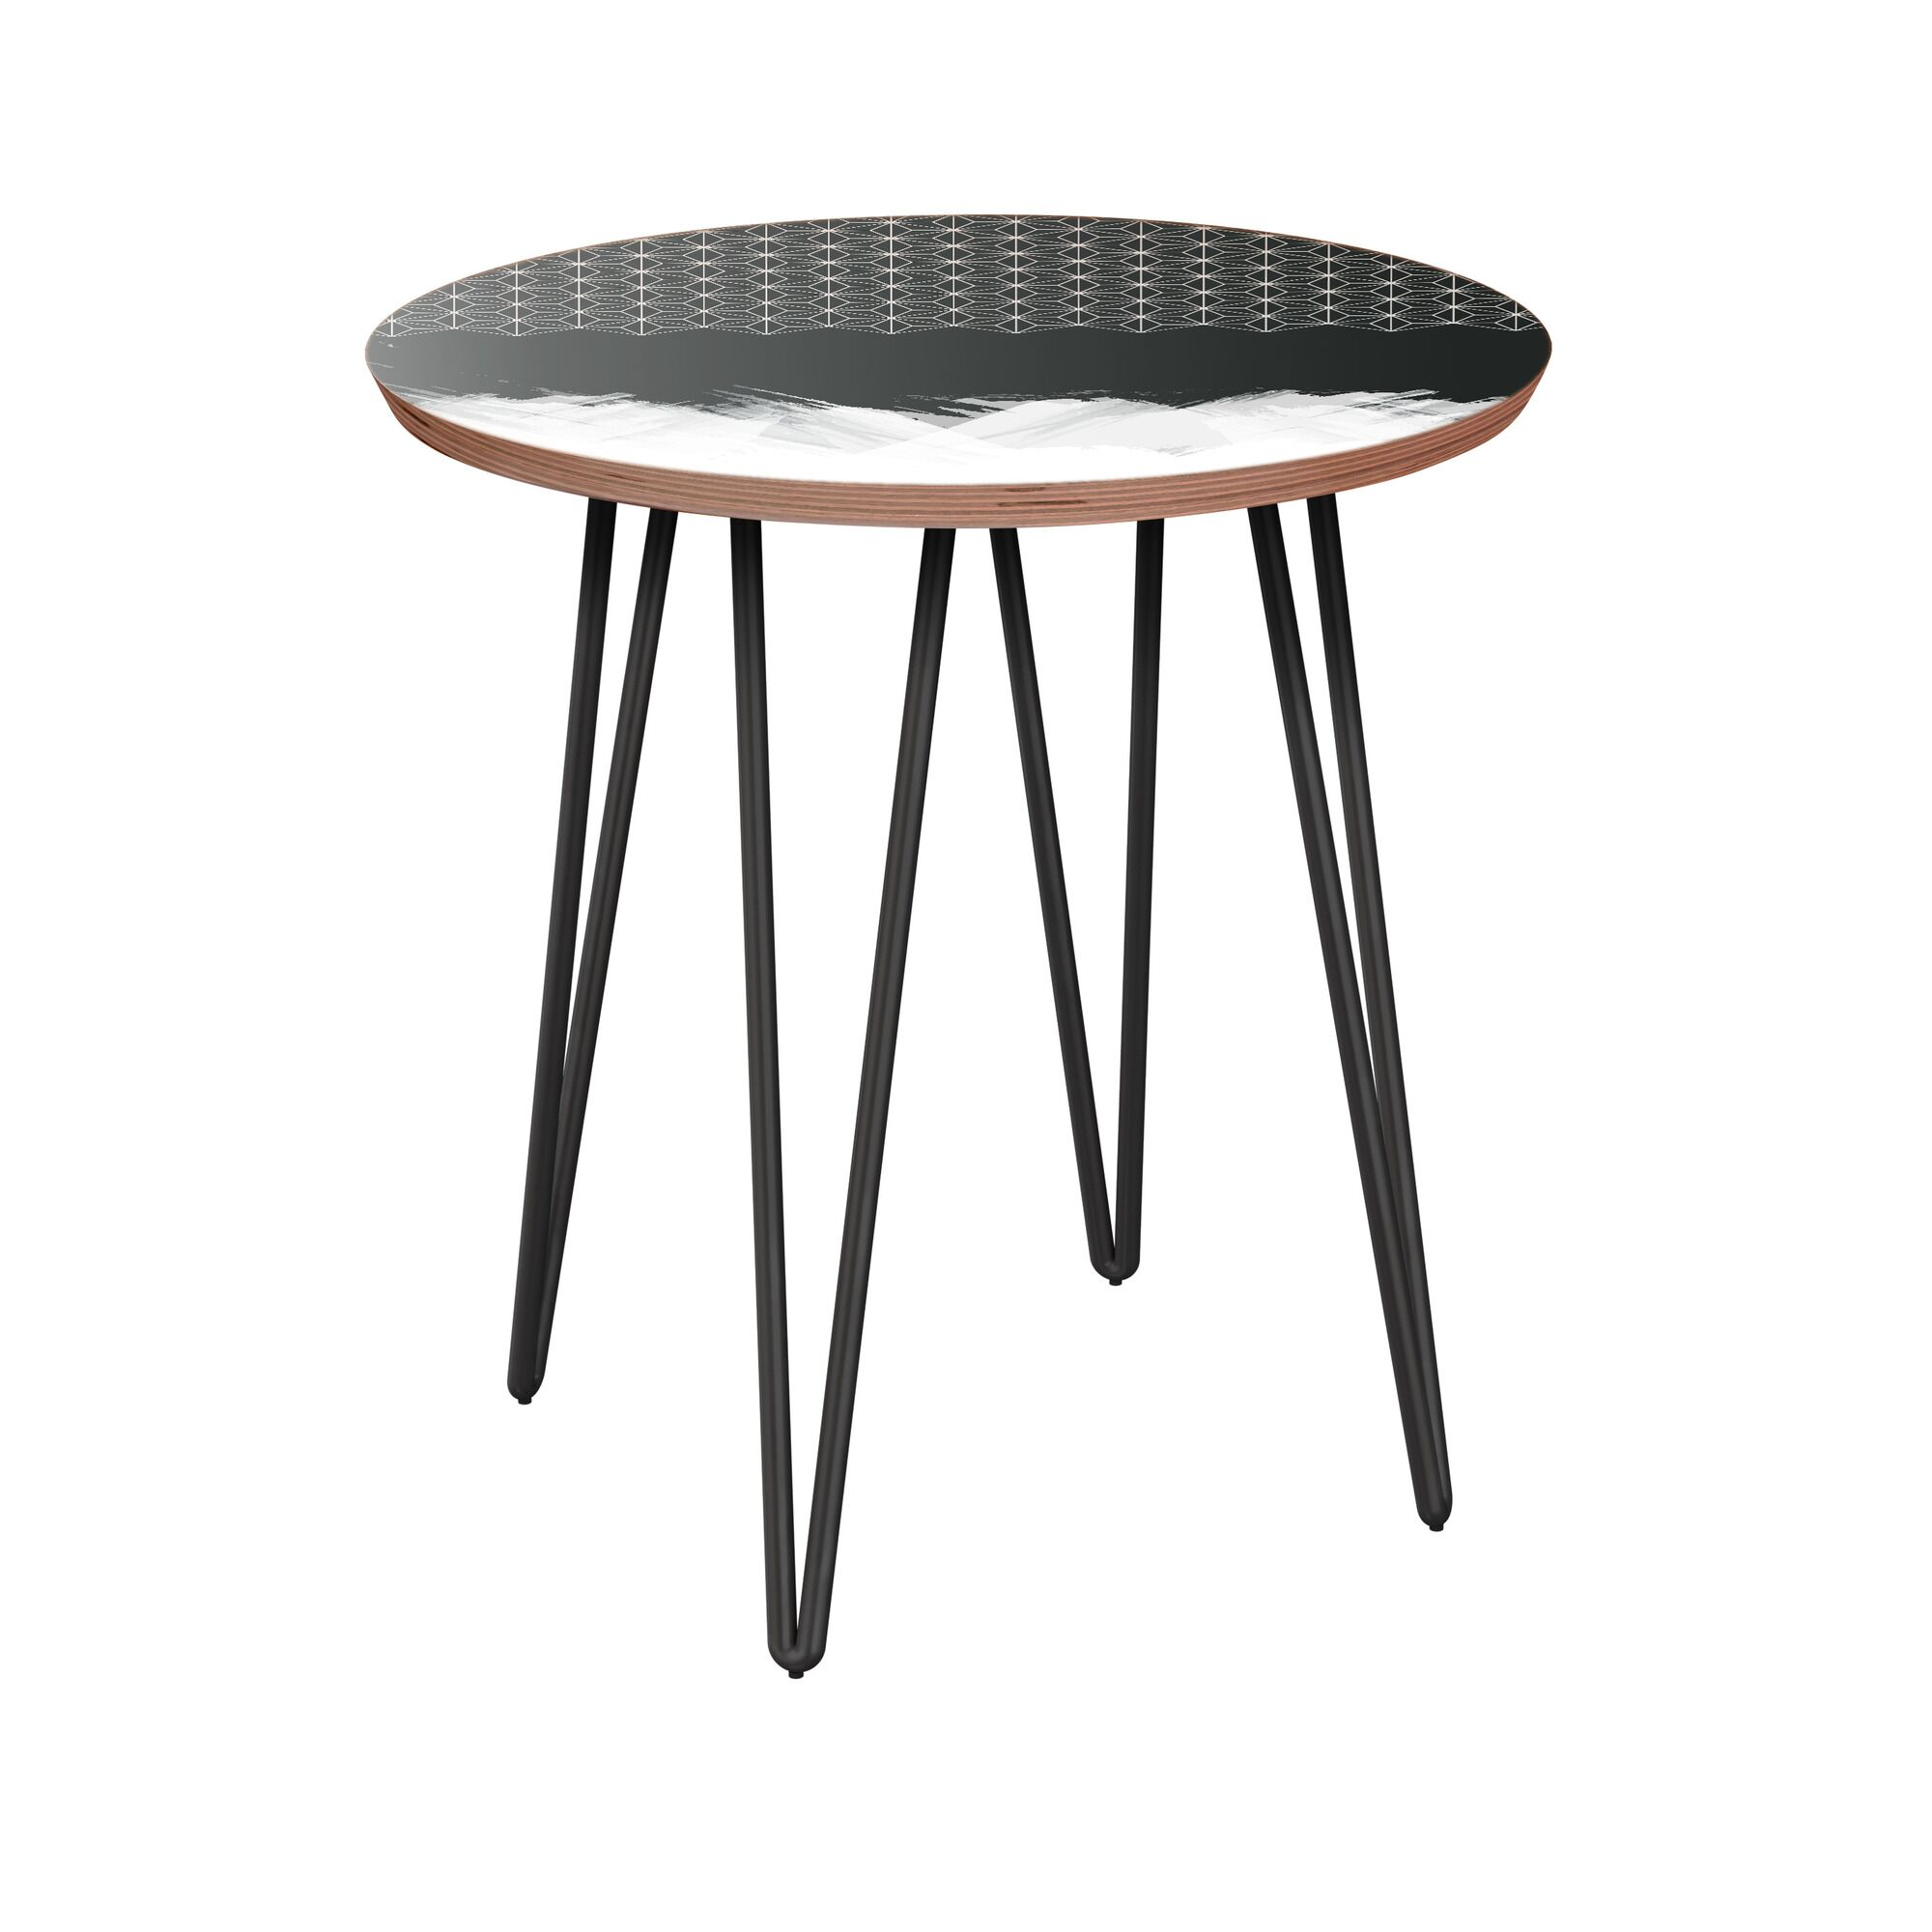 Etna End Table Table Base Color: Black, Table Top Color: Walnut